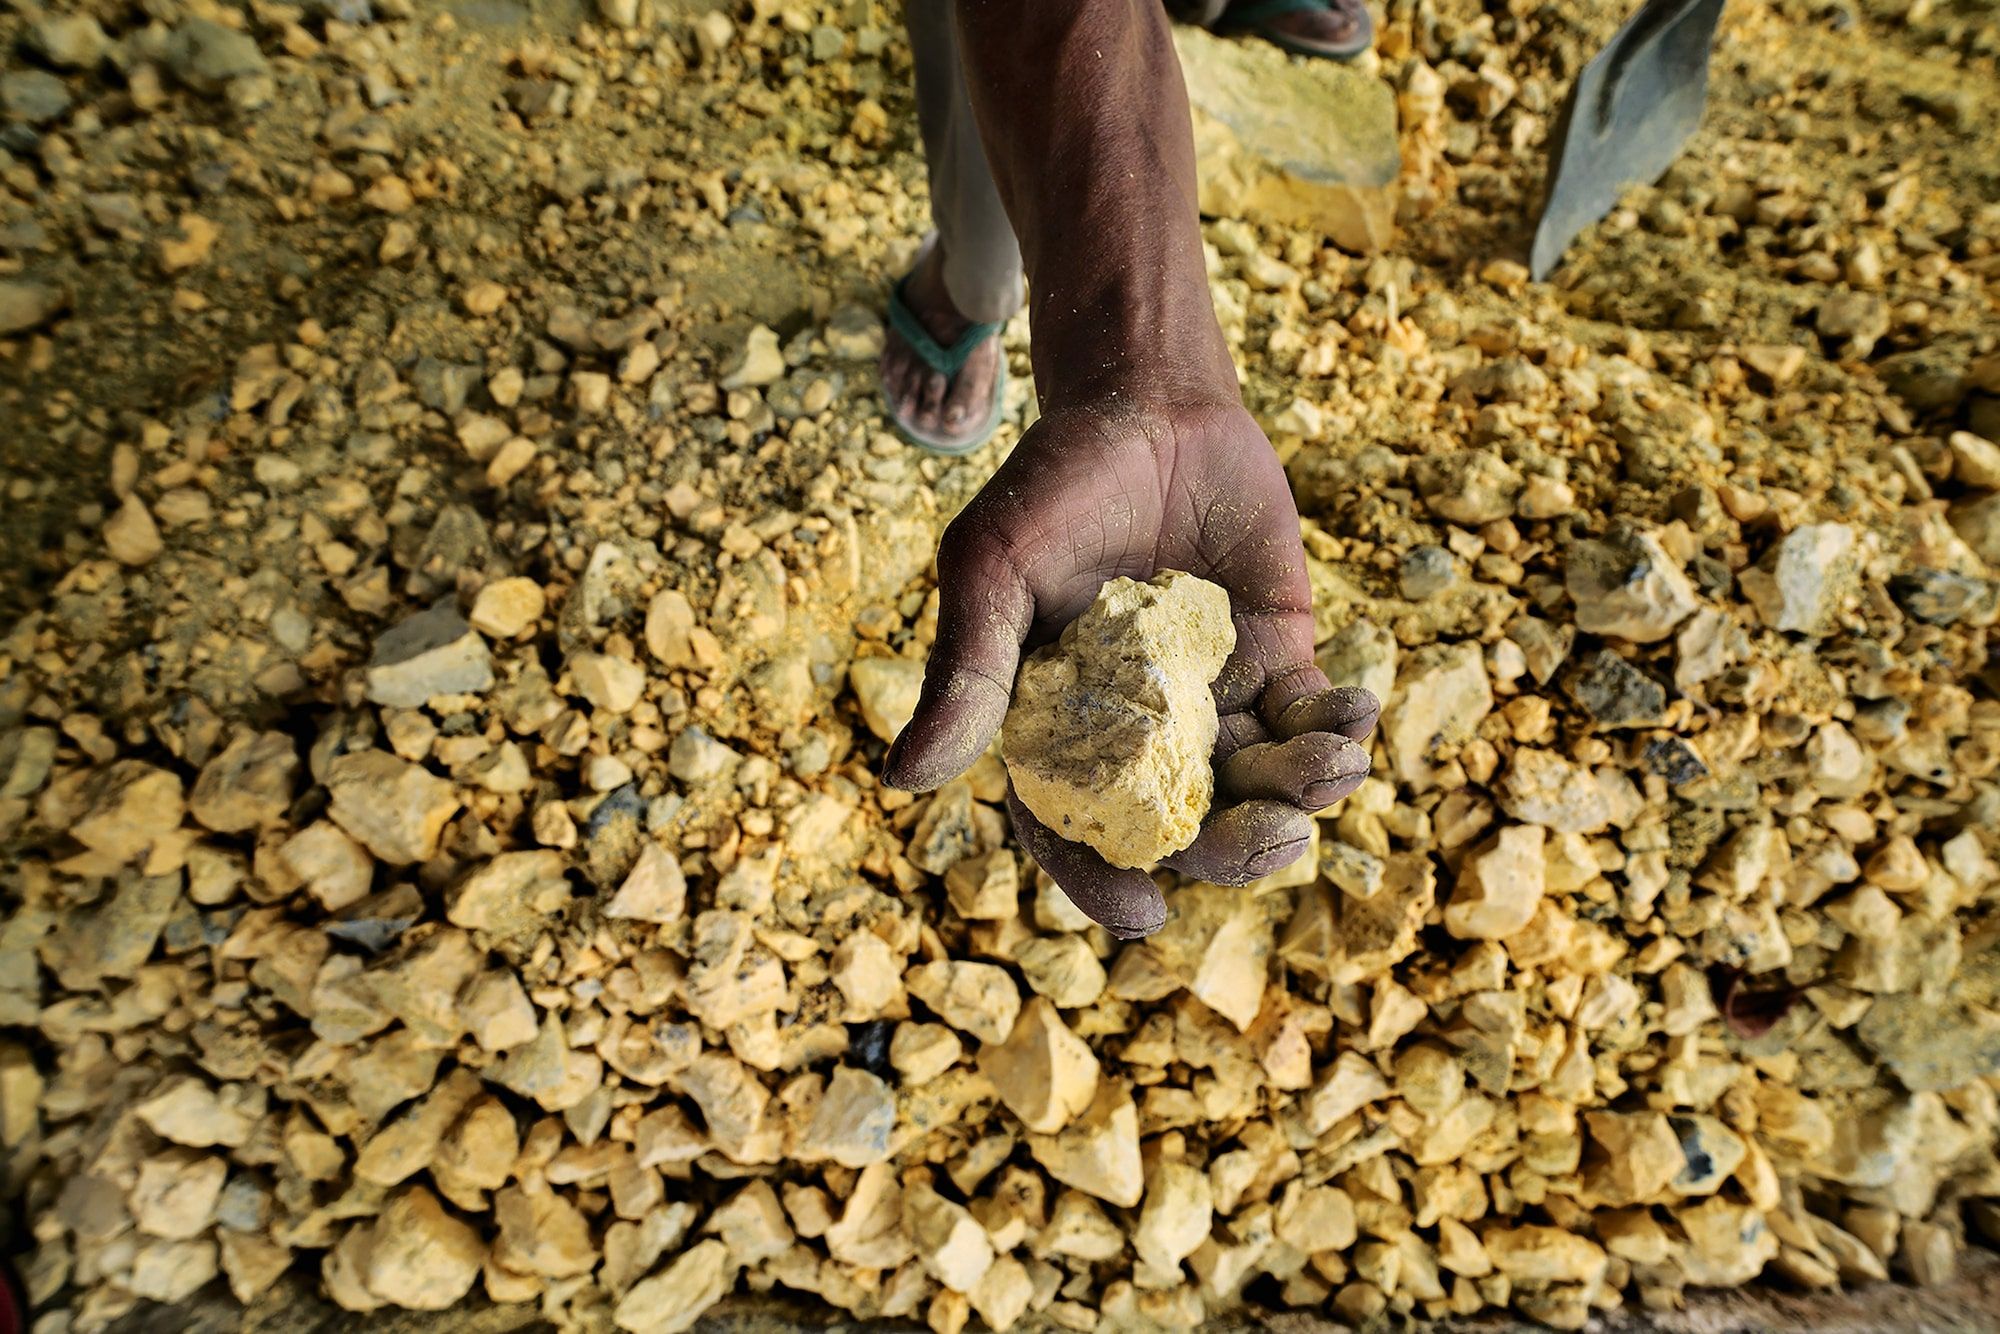 andrea frazzetta sony alpha 7RII miner uns his hands through a pile of sulfur rocks